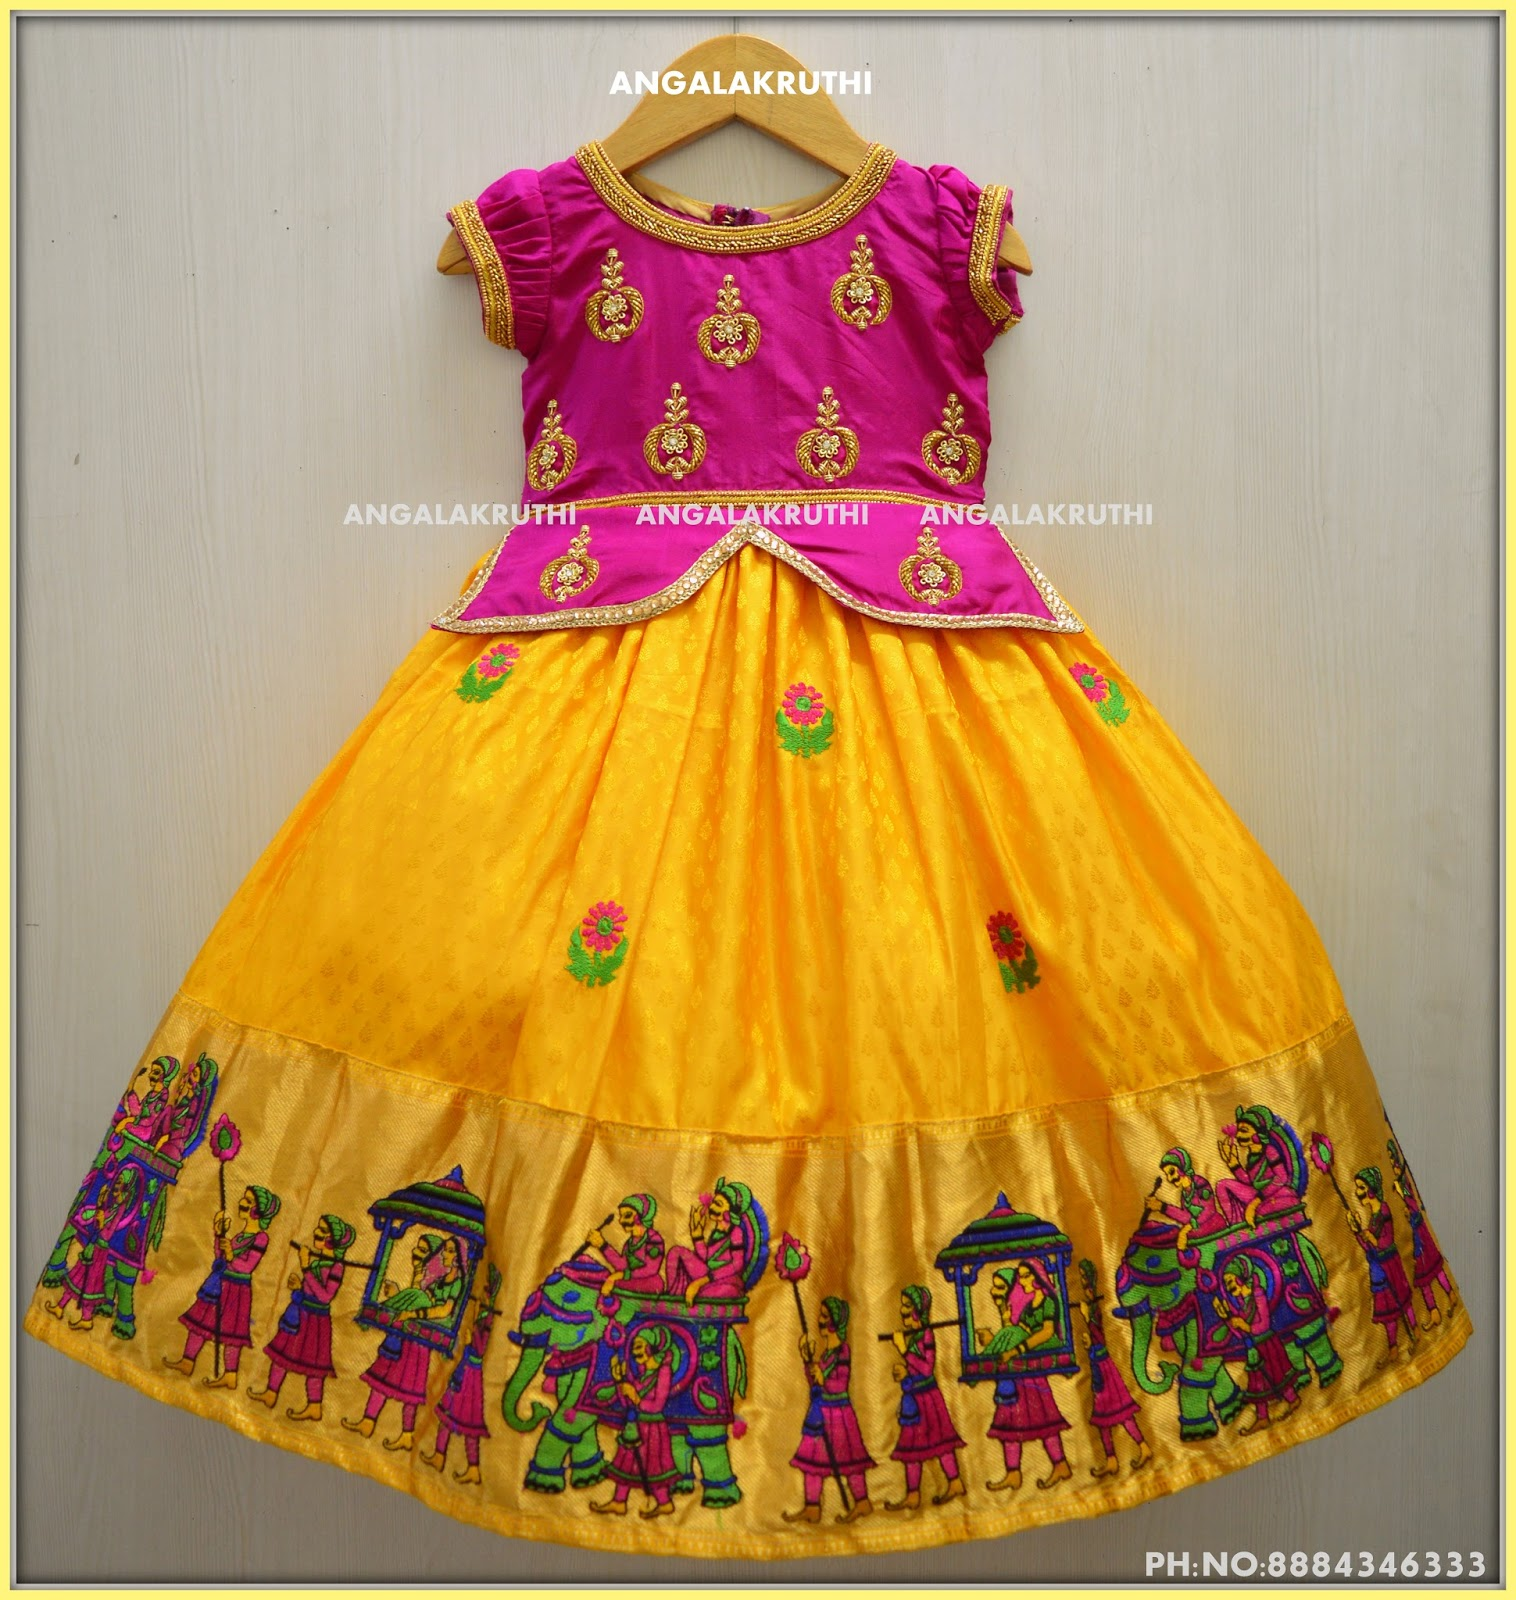 45aab7c35d1 Kids Party wear - custom designs by Angalakruthi boutique bangalore.  ANGALAKRUTHI- Custom designer boutique in Bangalore with online order ...